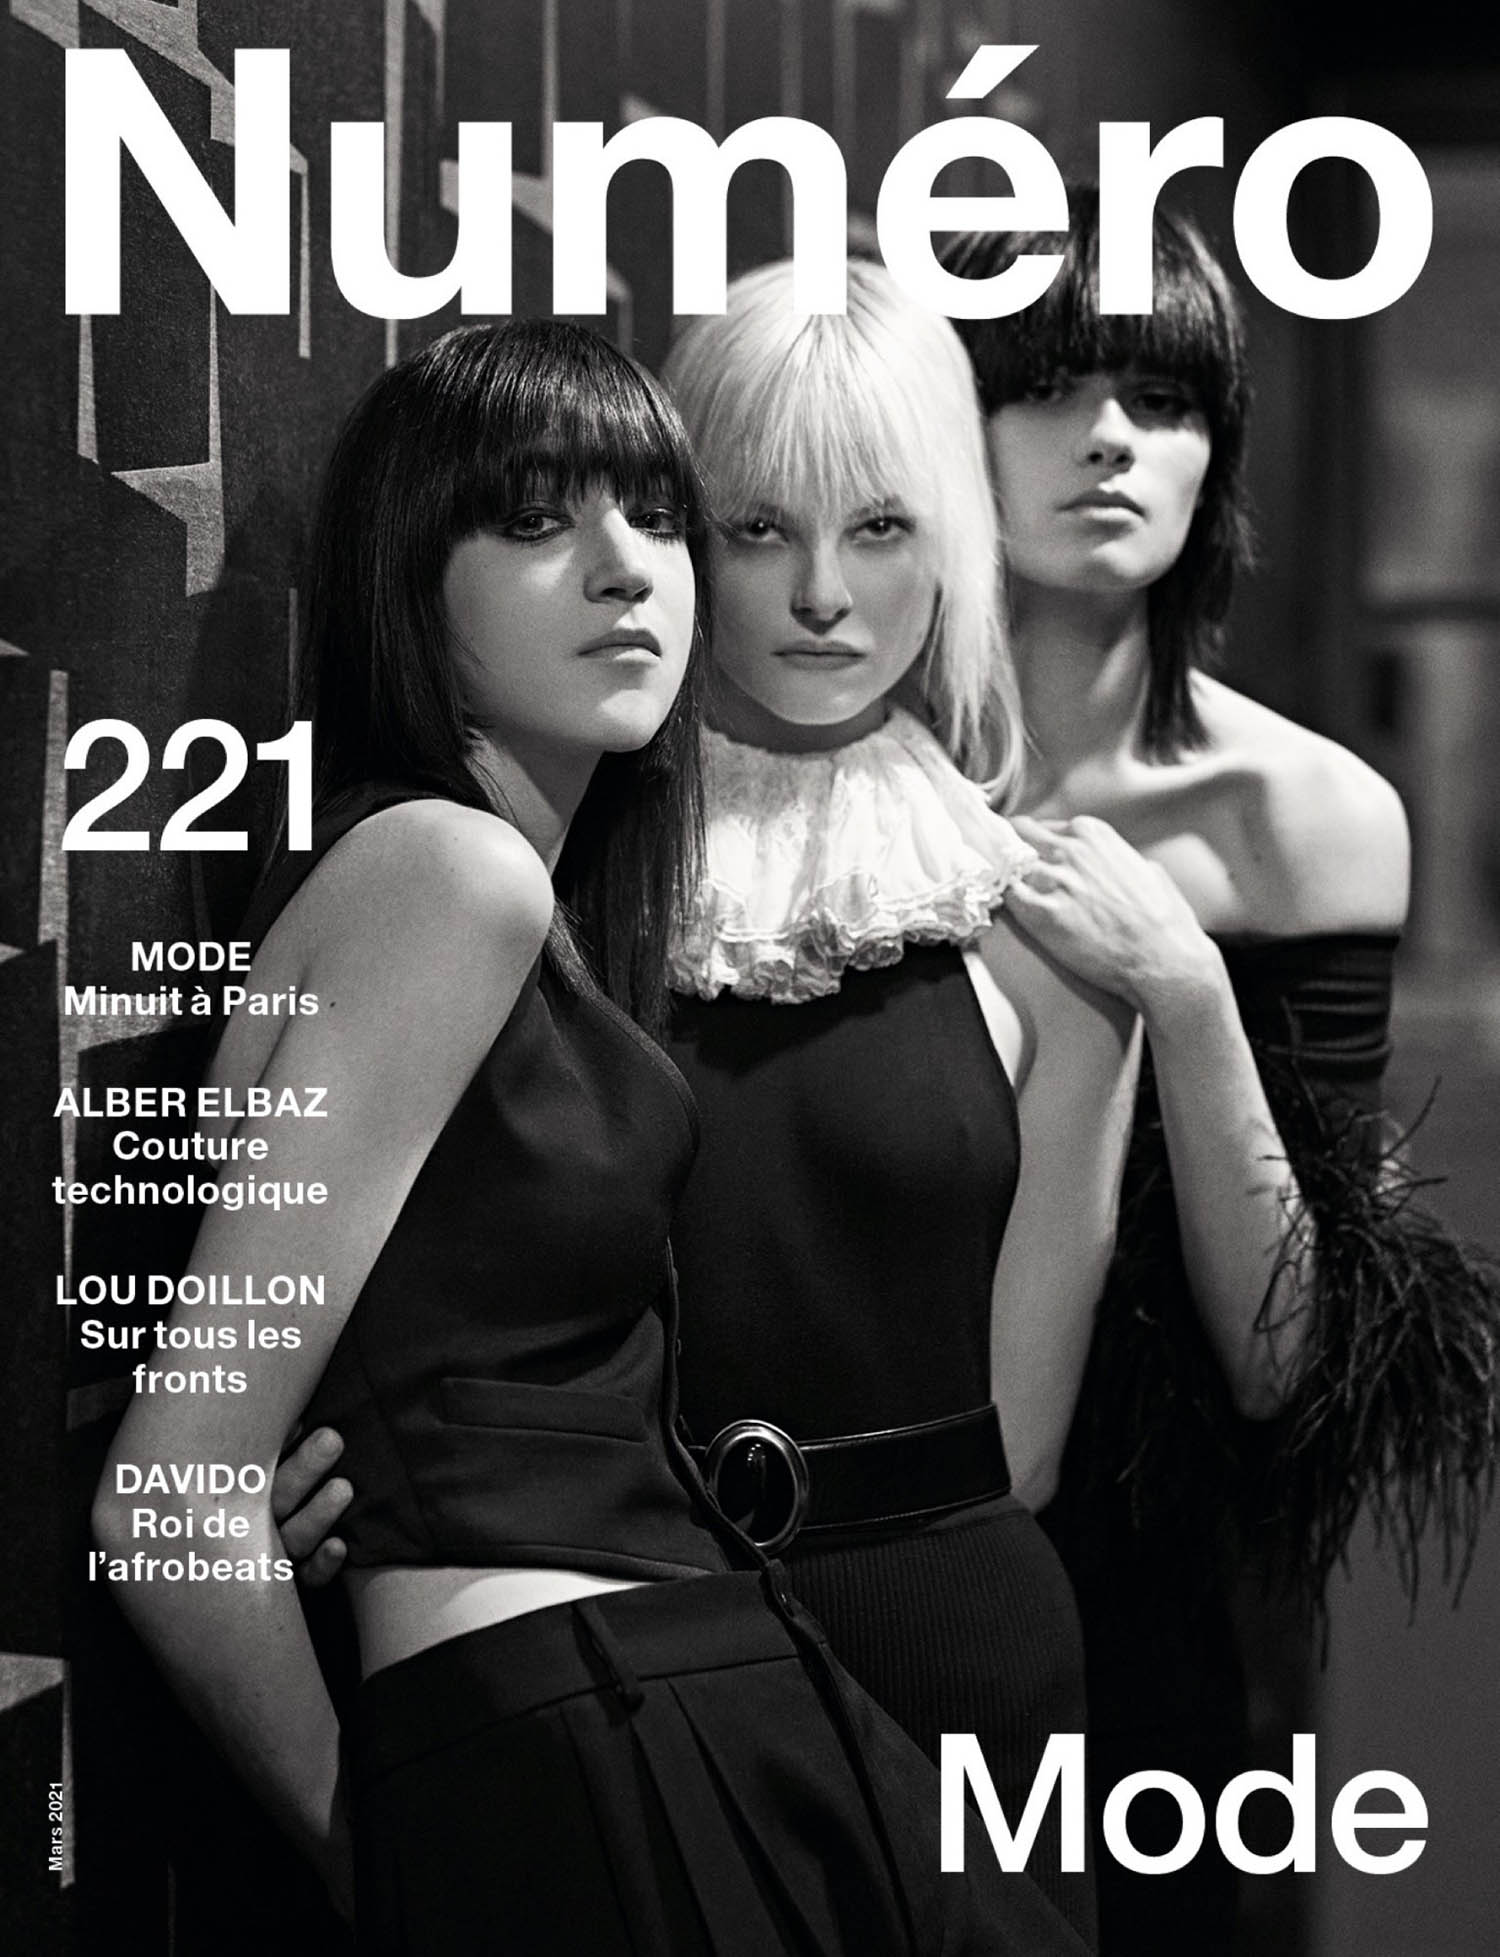 Zso Varju, Topsy and Antonia Przedpelski cover Numéro March 2021 by Dominique Issermann